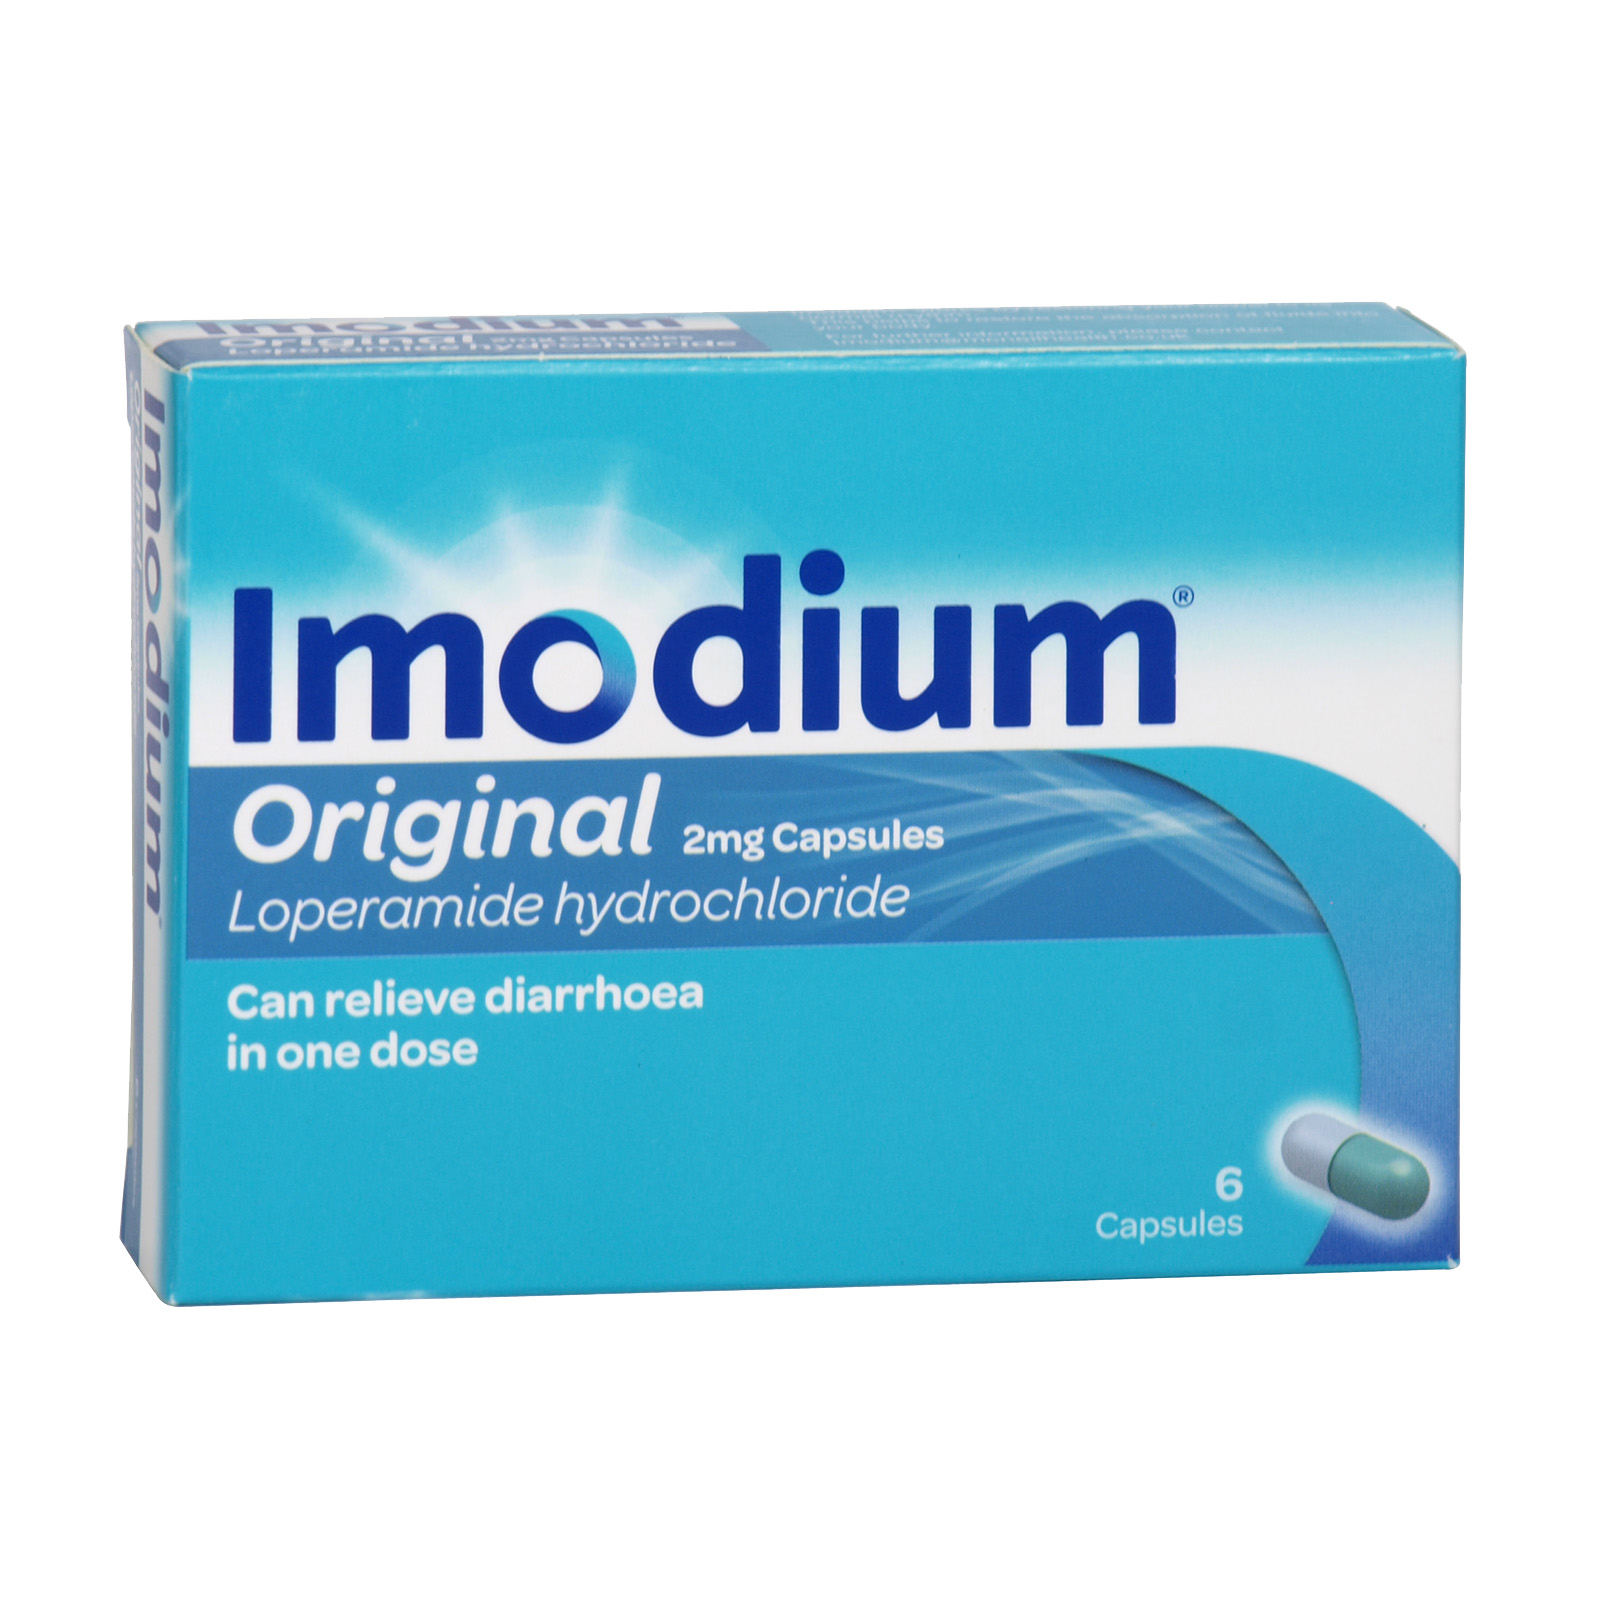 IMODIUM CAPSULES 6'S X6 (NON RETURNABLE)